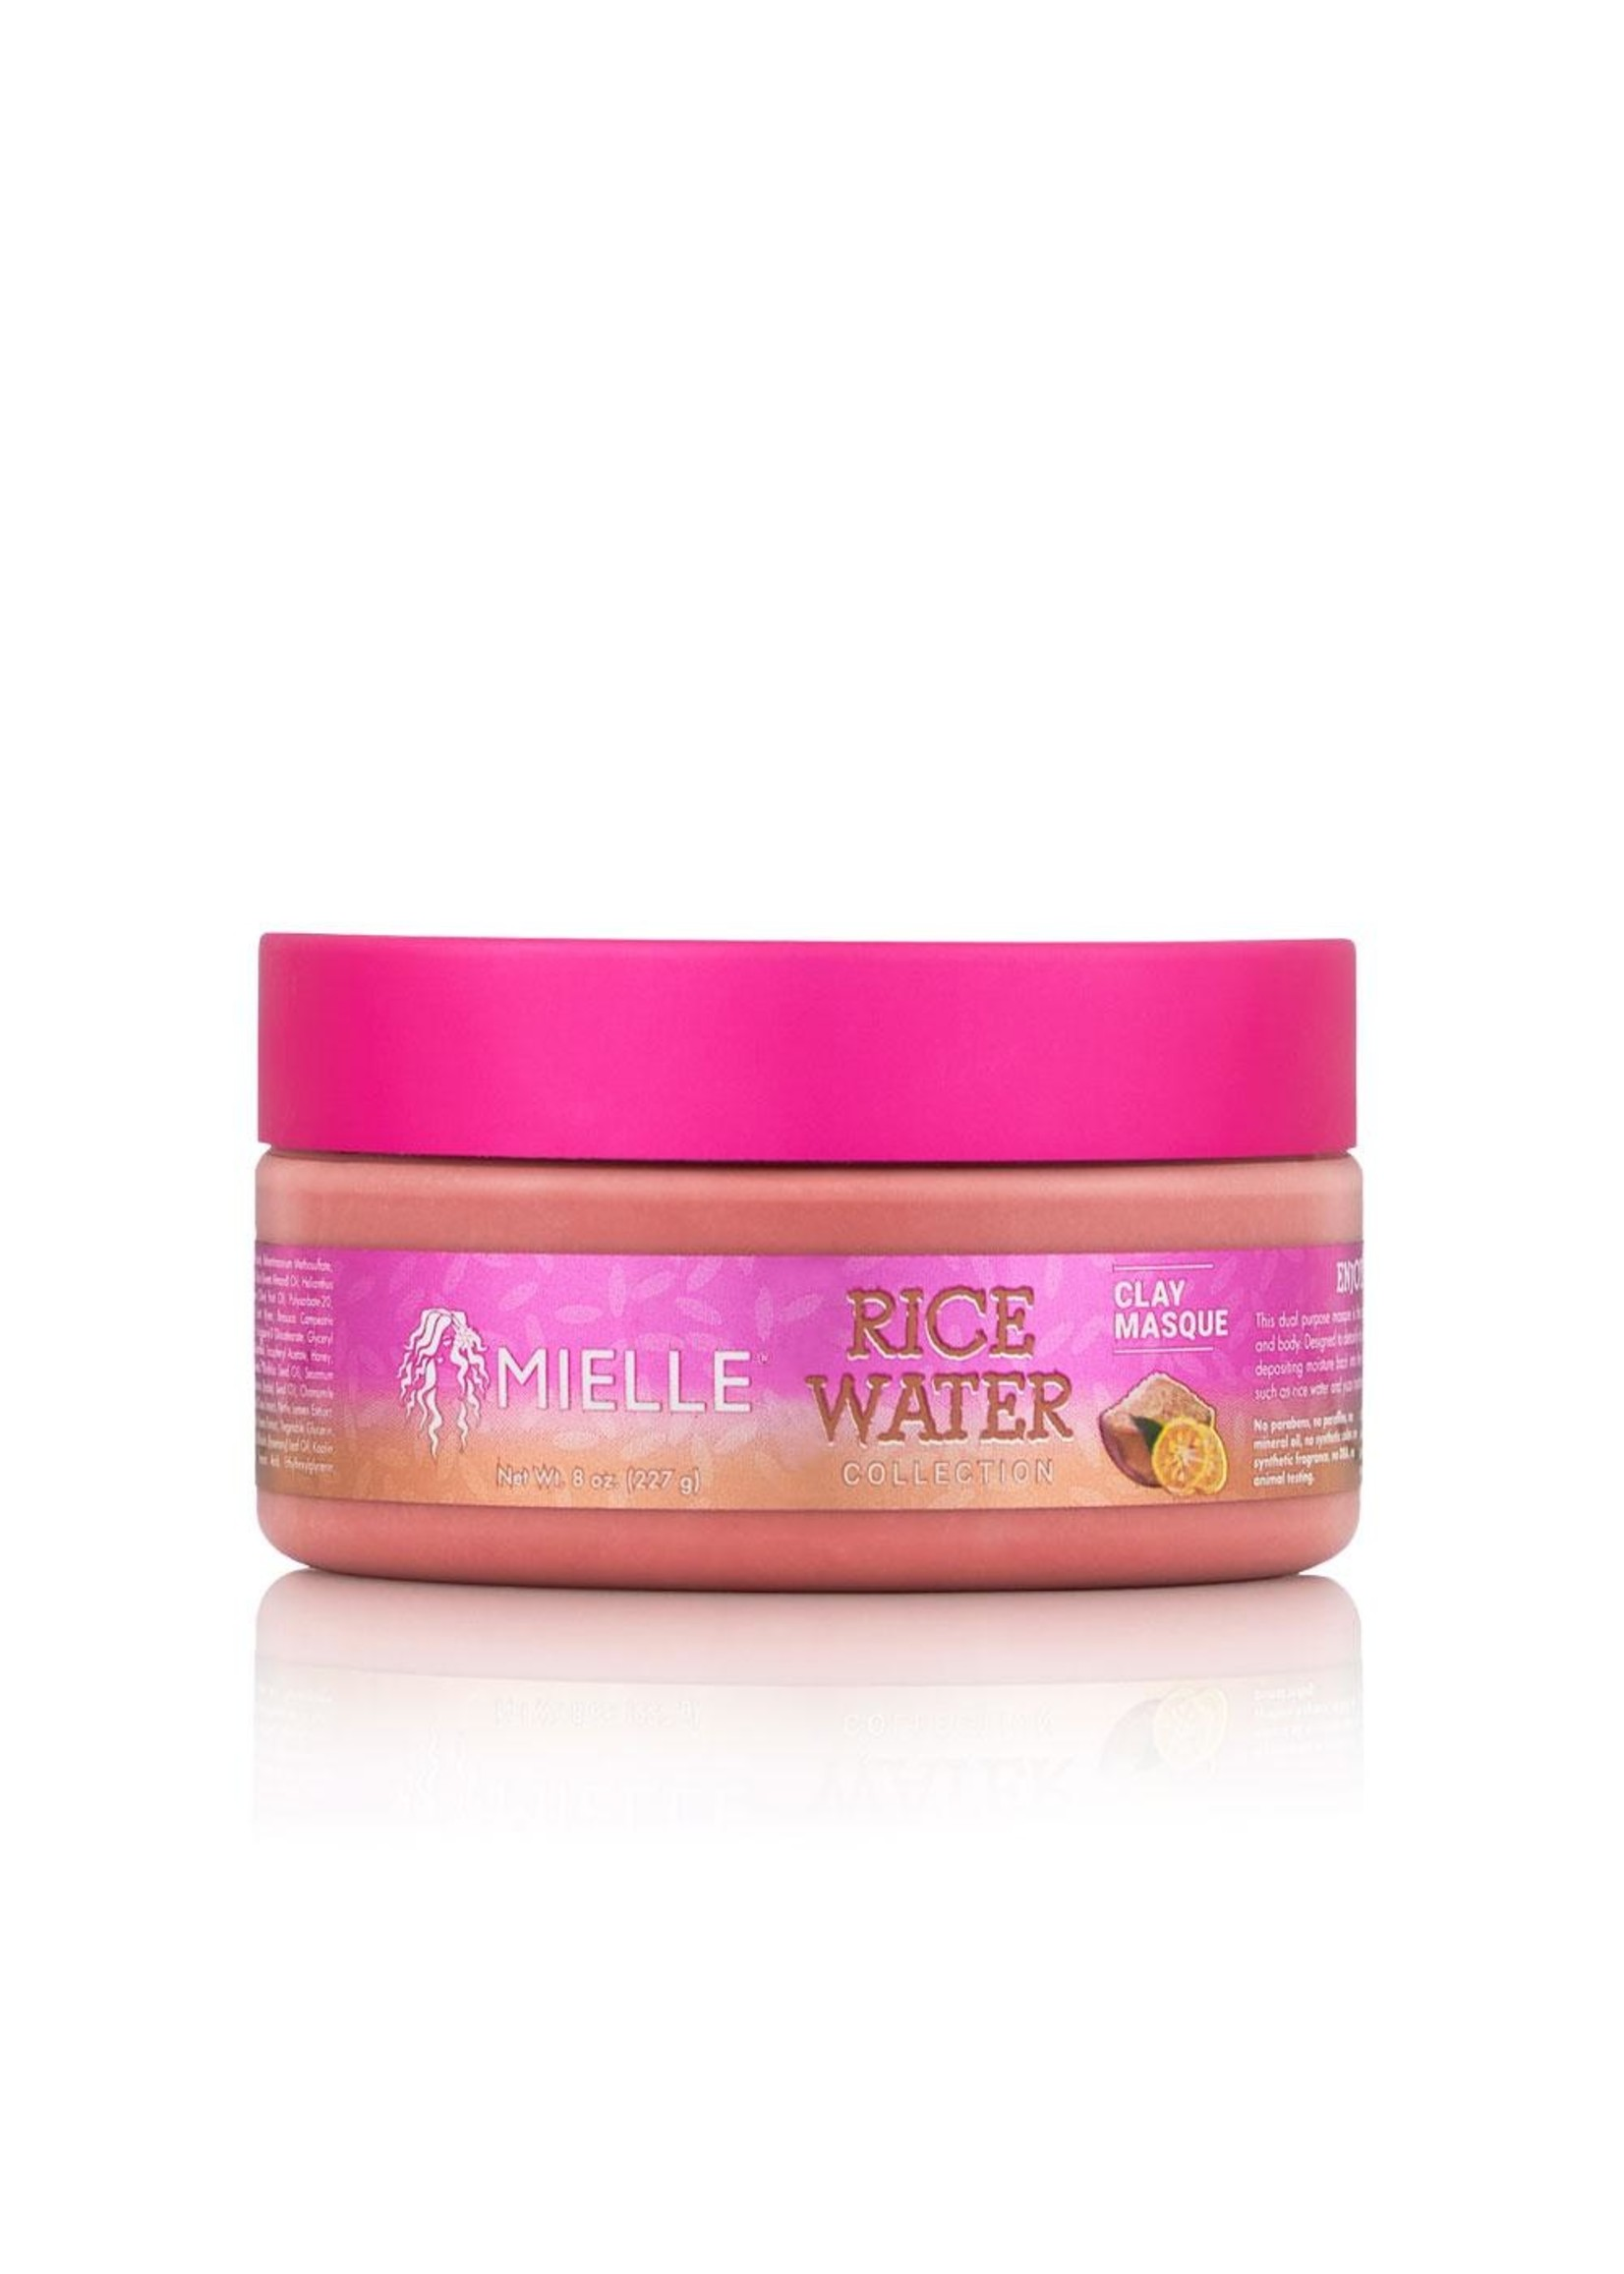 Mielle Rice Water Clay Masque